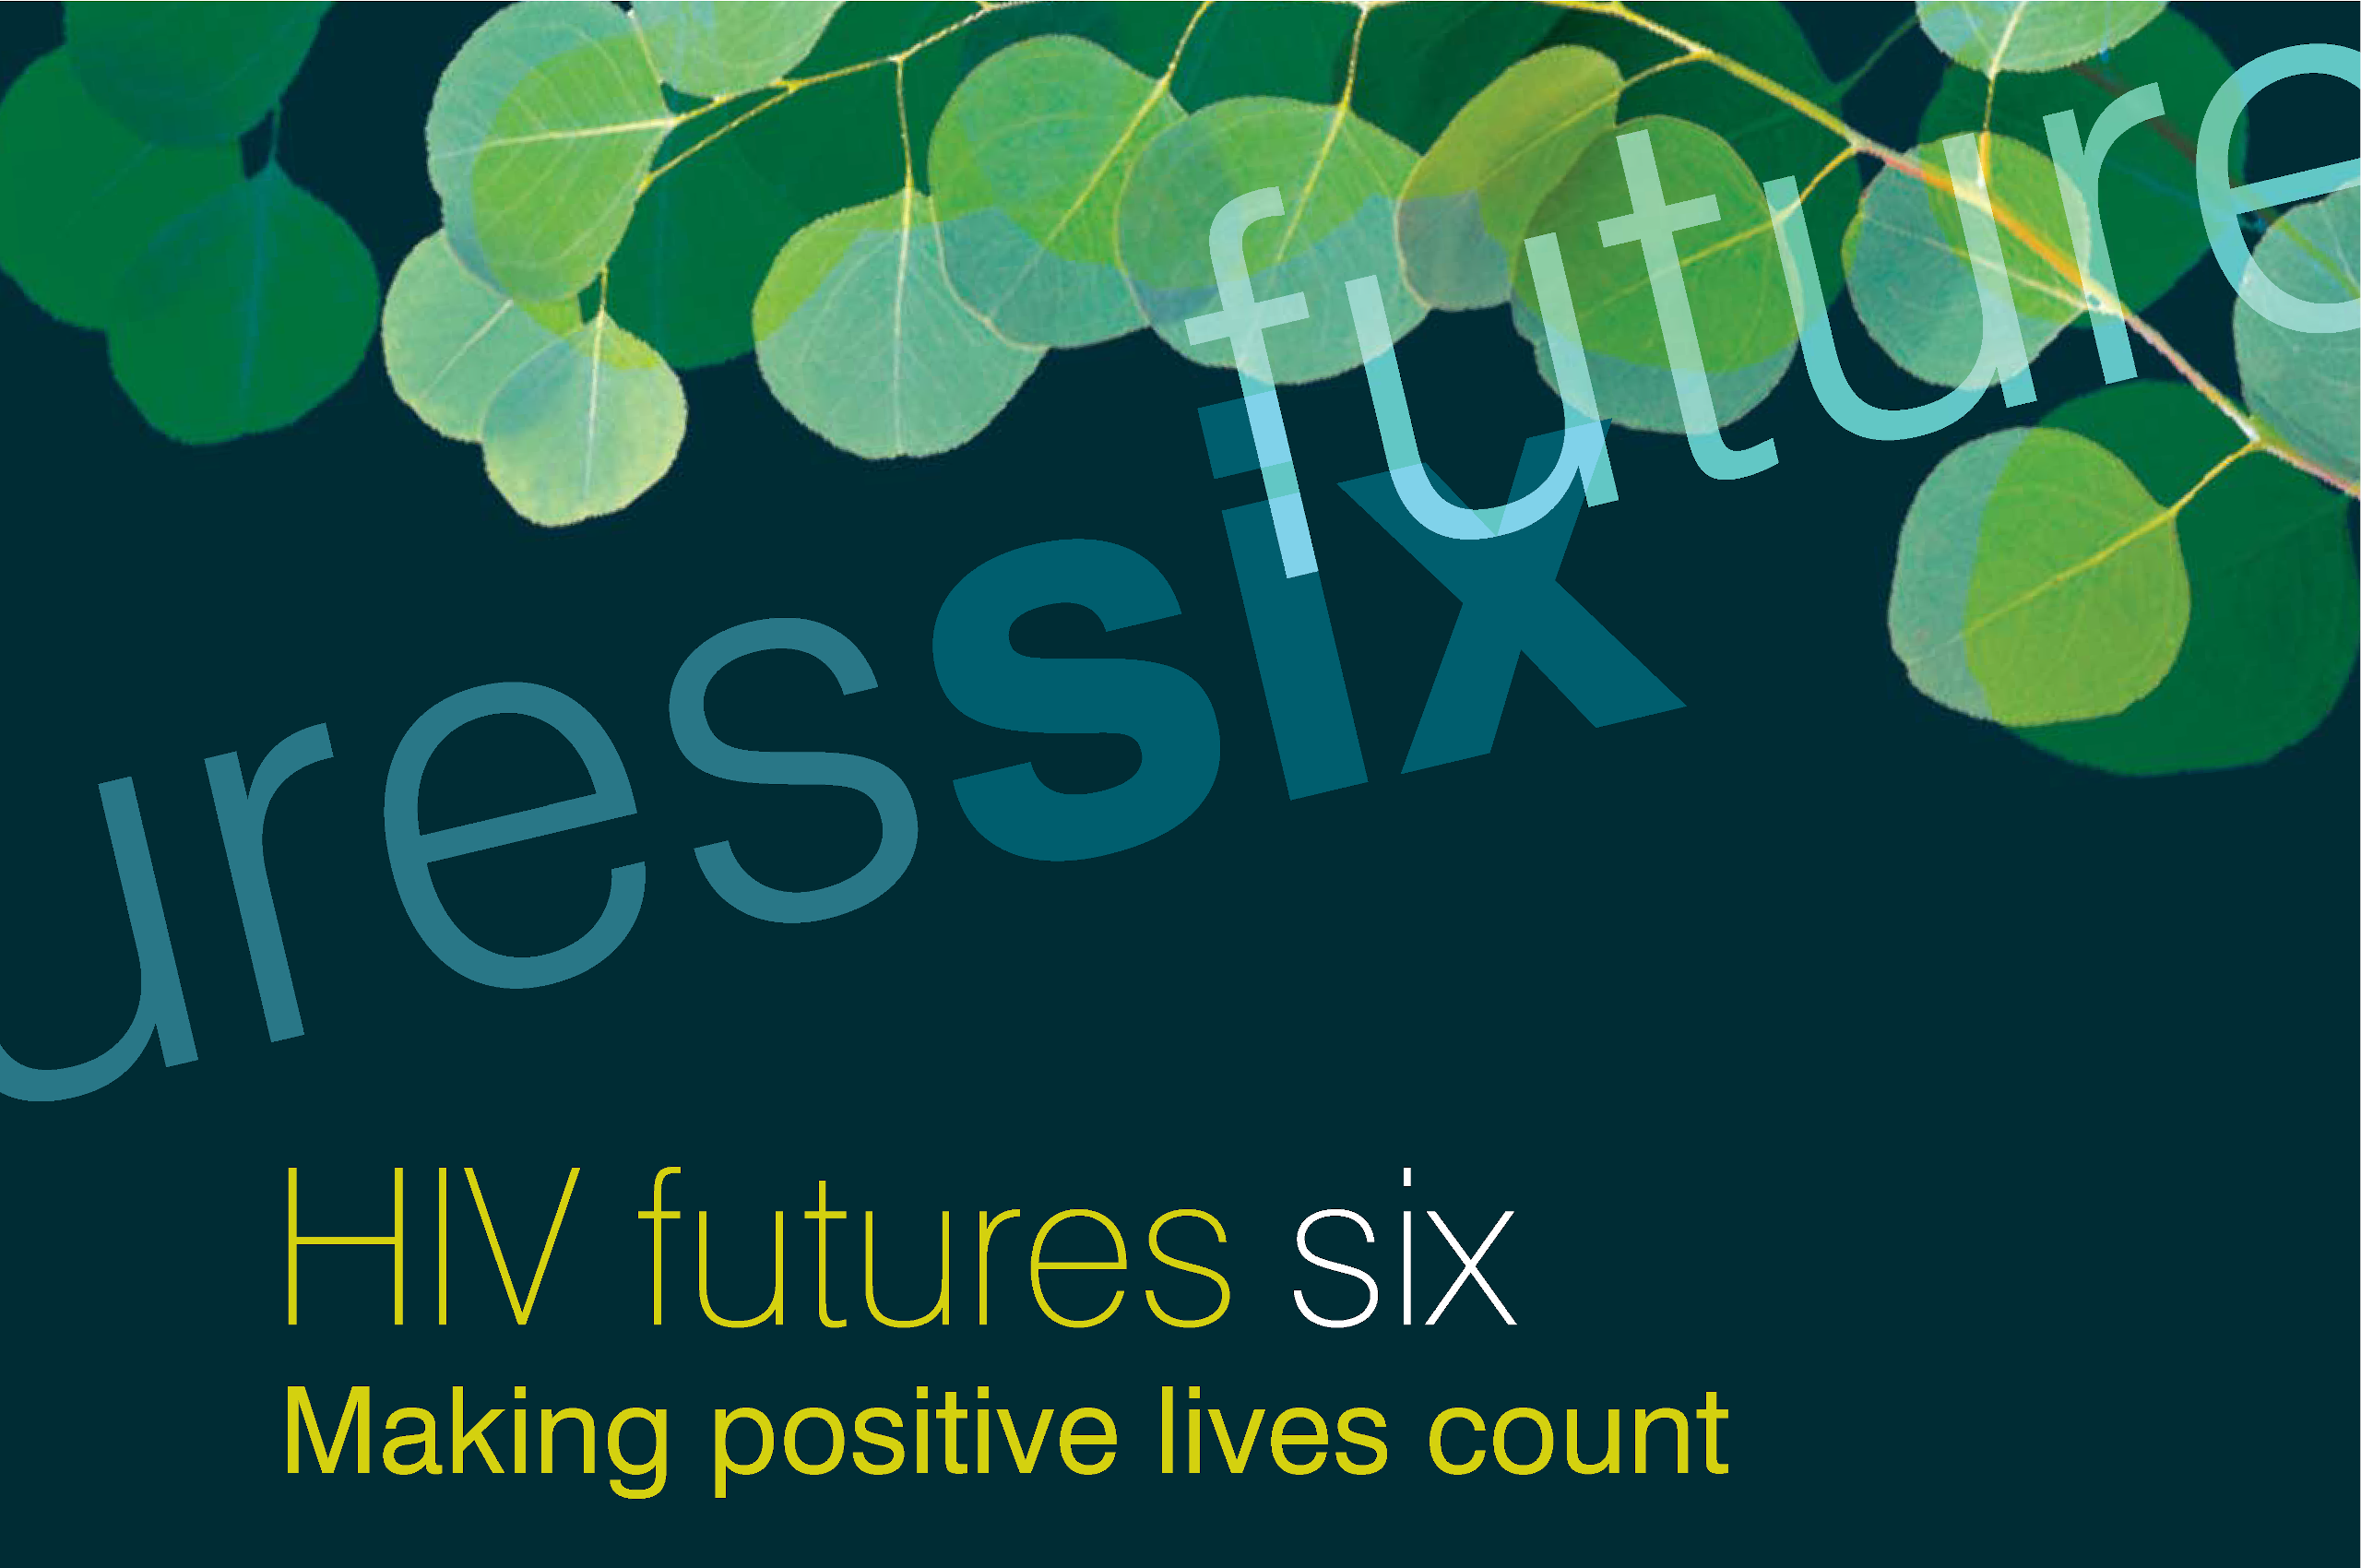 HIV Futures 7 logo with gum leaf design and text 'HIV futures six Making positive lives count